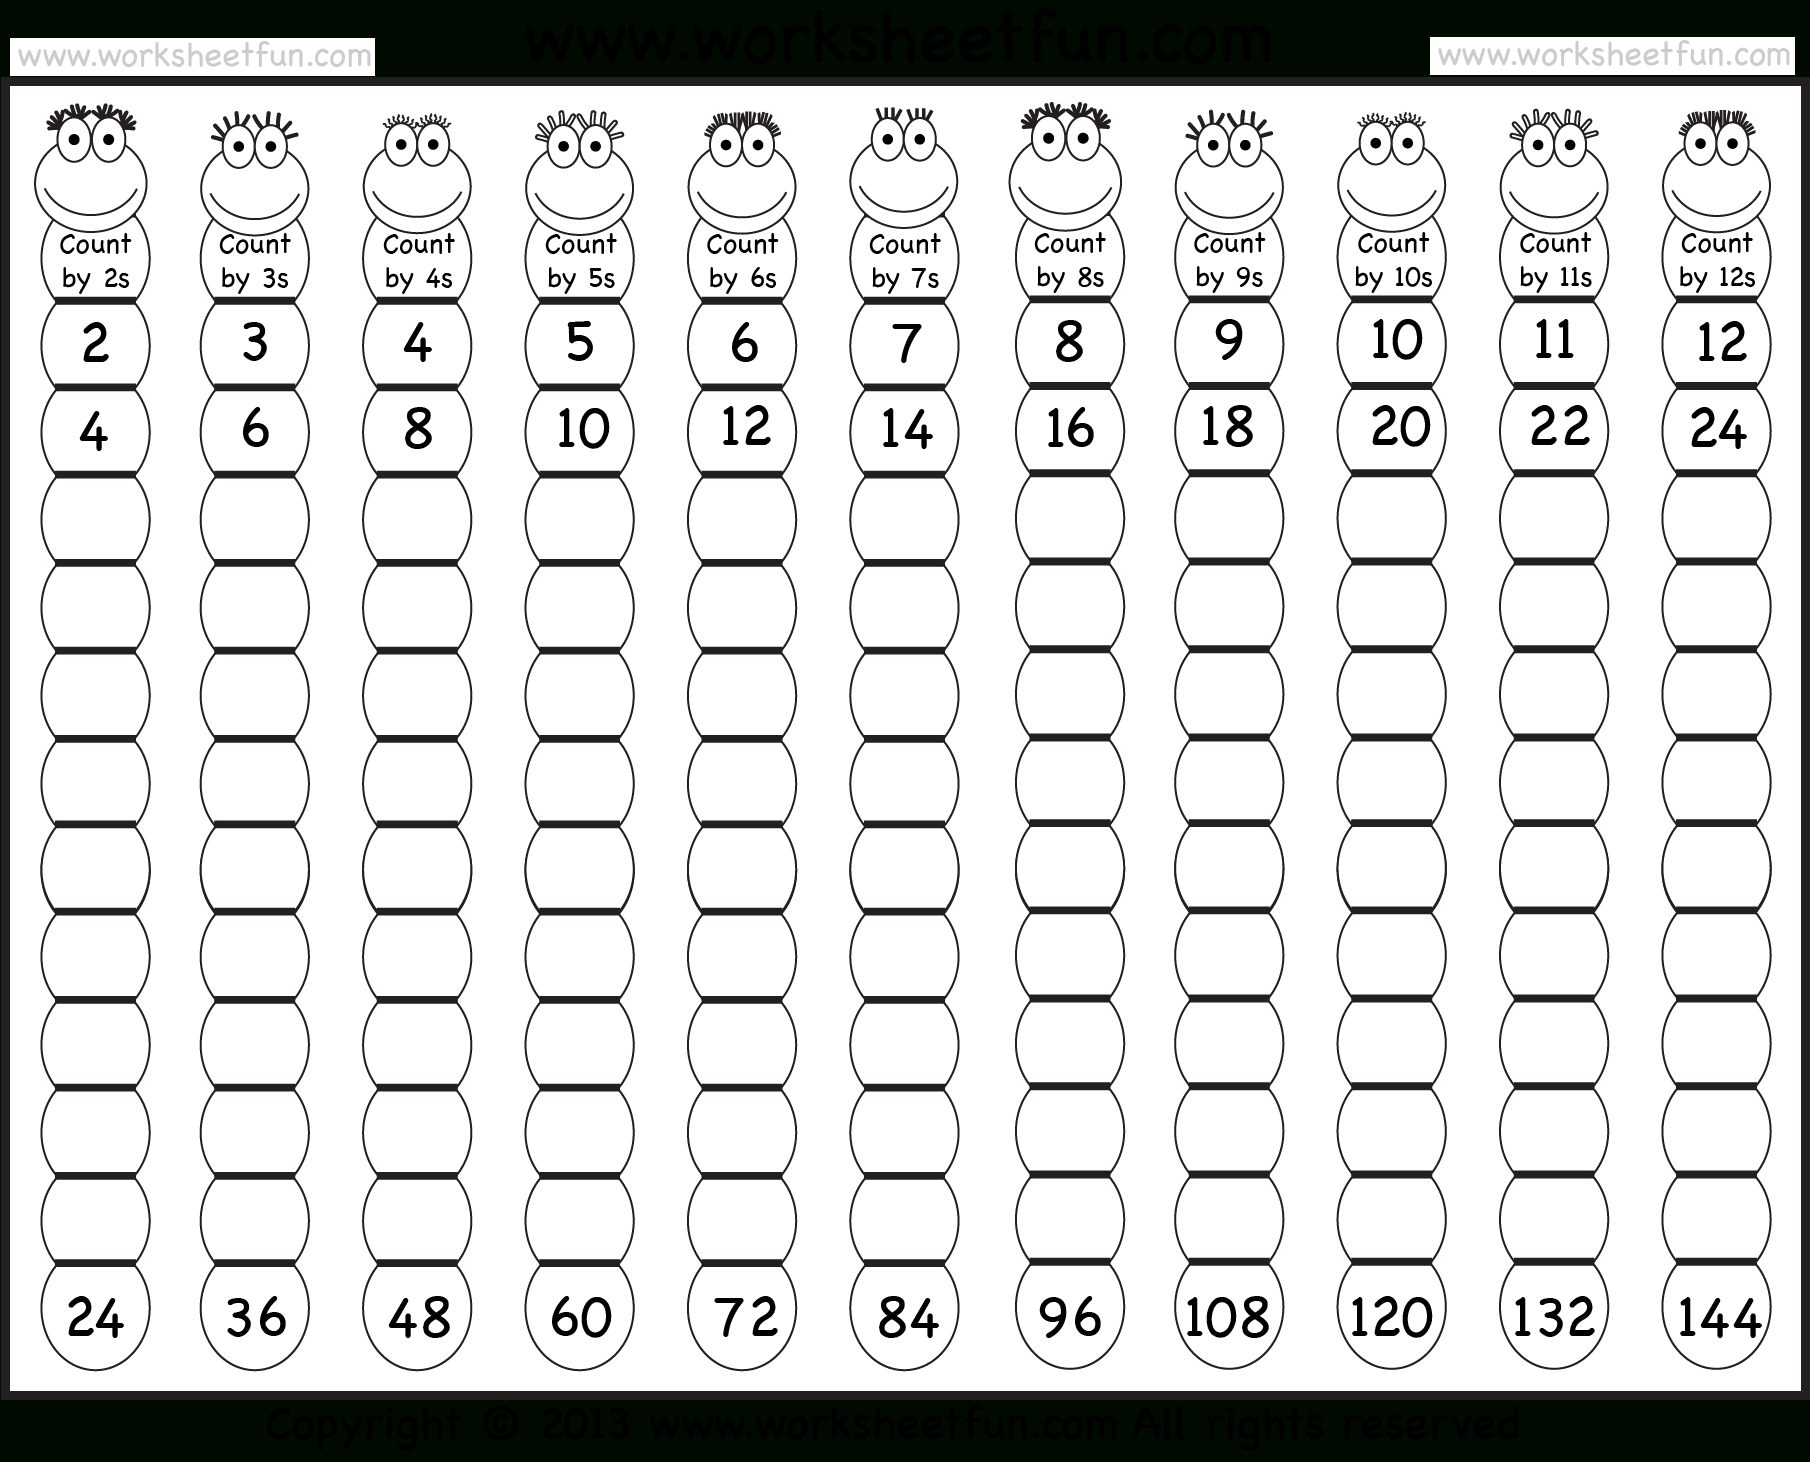 Times Table – 2-12 Worksheets – 1, 2, 3, 4, 5, 6, 7, 8, 9, 10, 11 | Multiplication Tables 1 12 Printable Worksheets